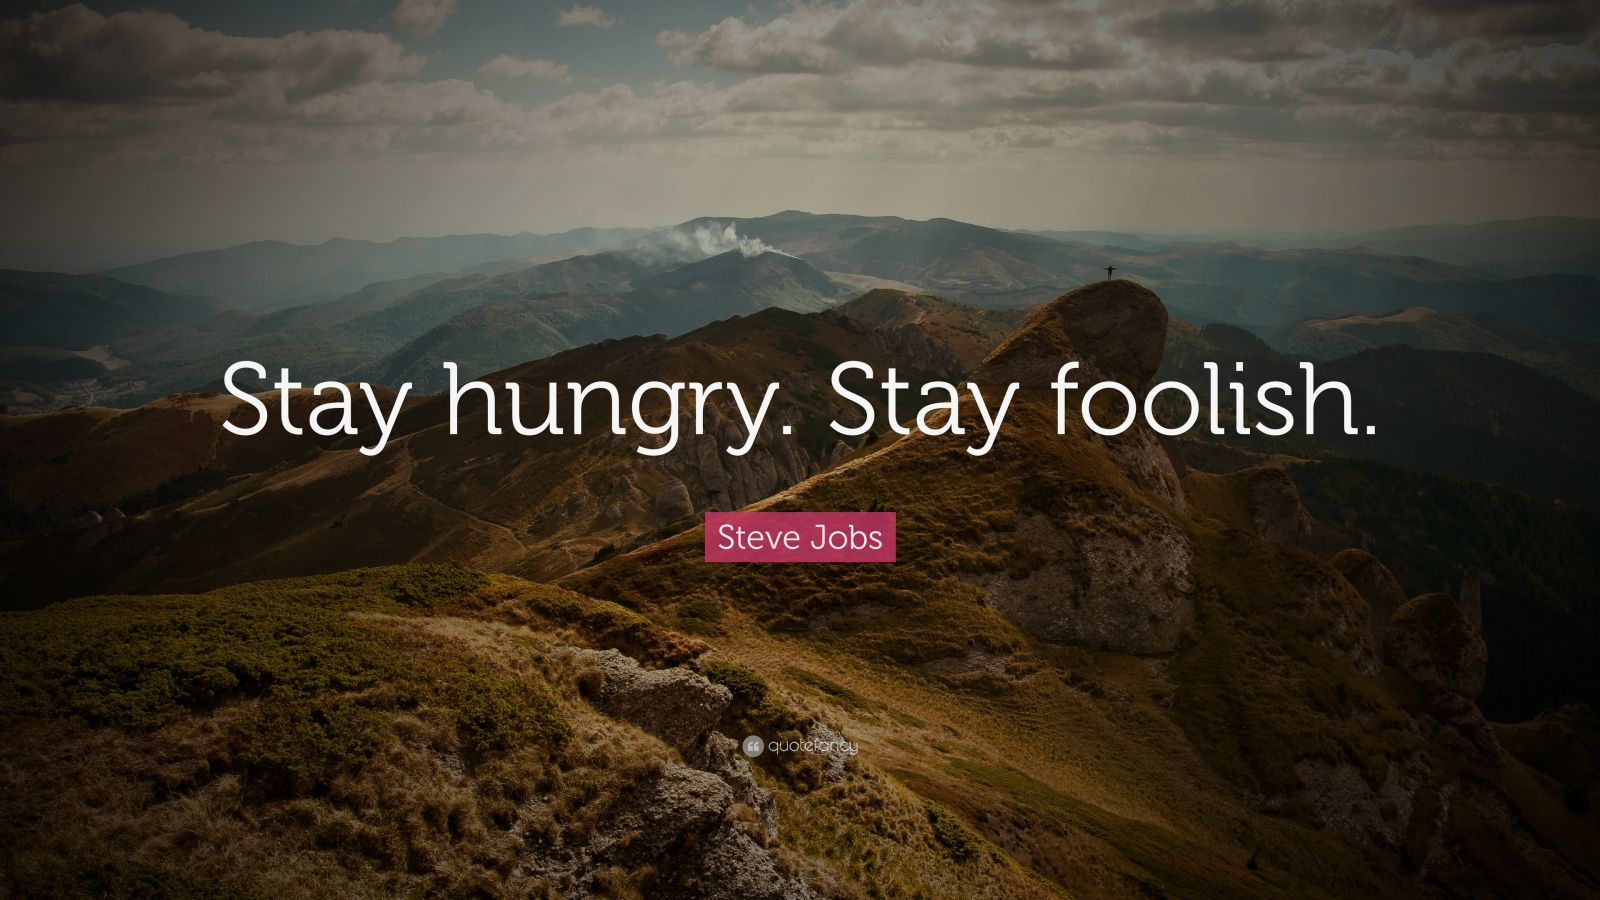 Steve Jobs Motivational Quotes Wallpaper Steve Jobs Quote Stay Hungry Stay Foolish 41